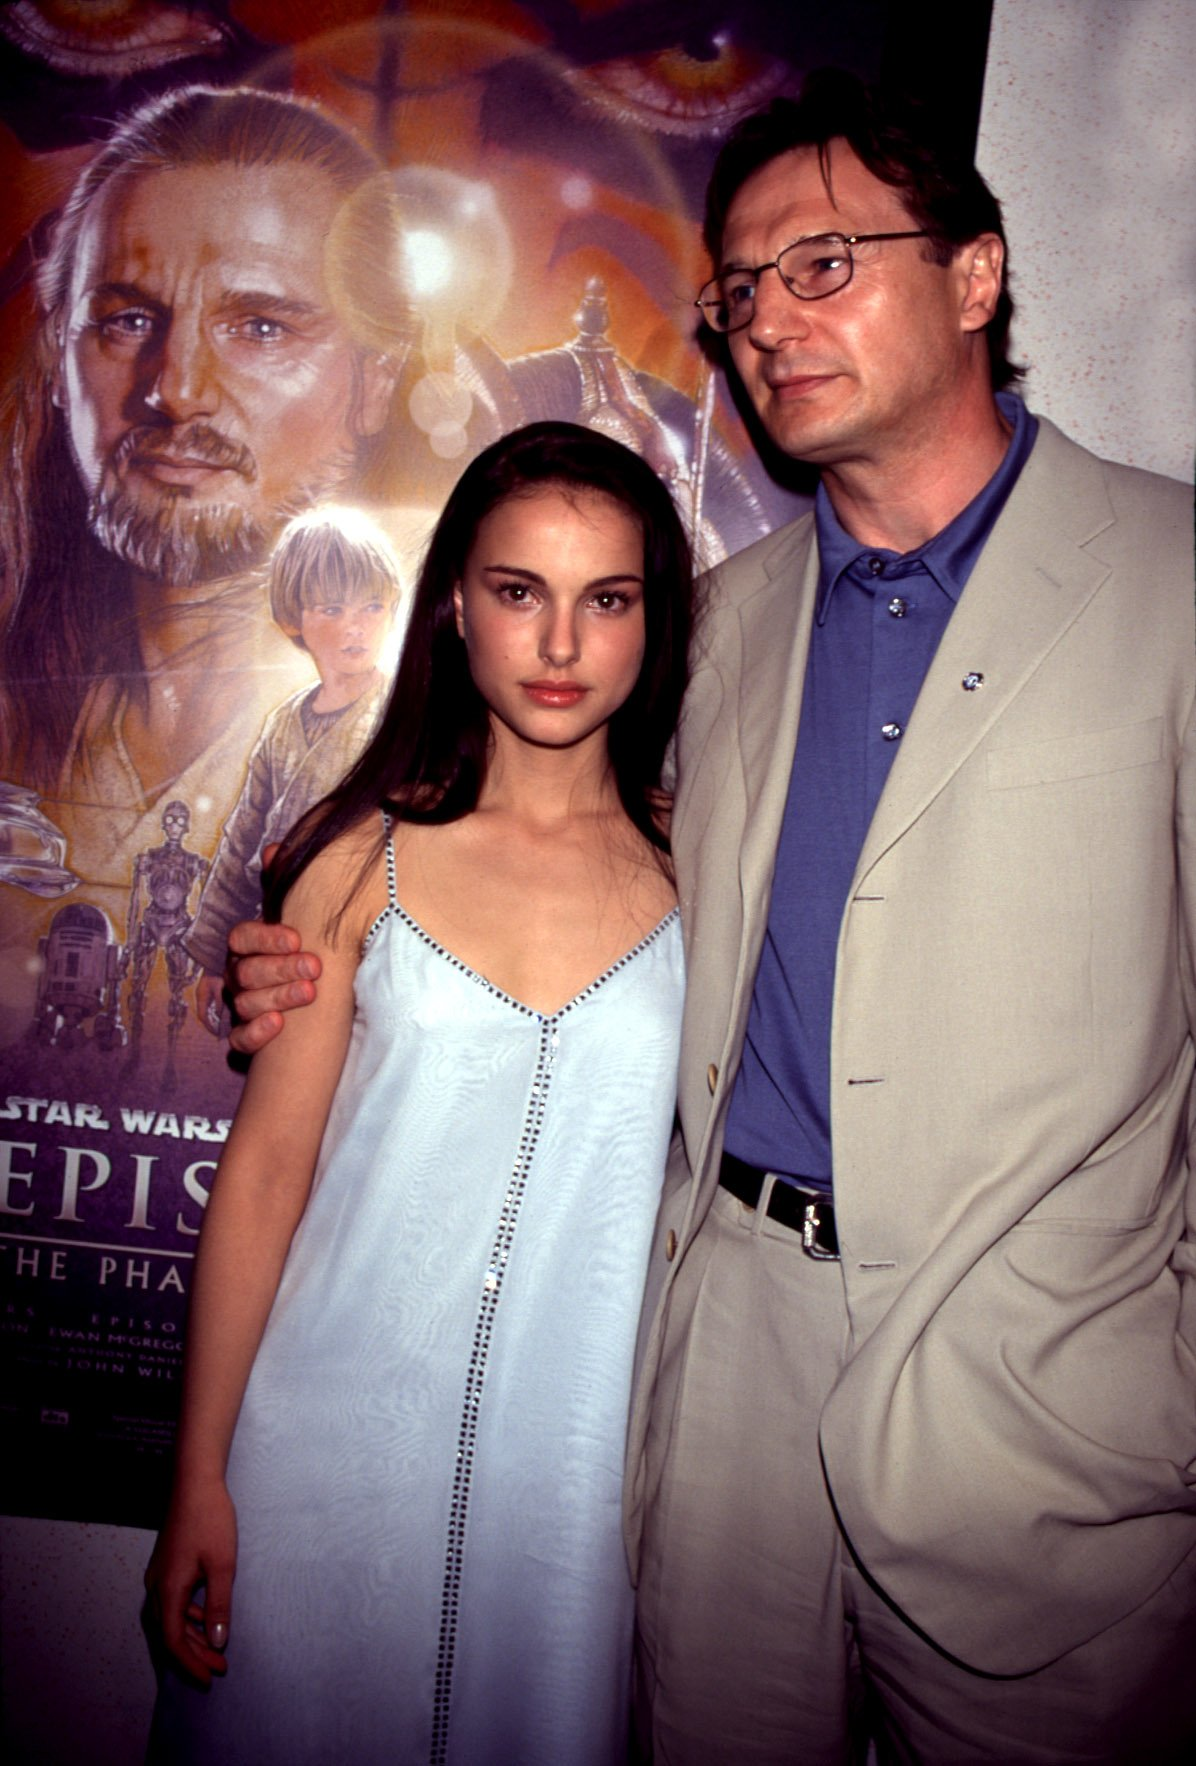 Natalie Portman (in a Gucci dress), Liam Neeson at the New York charity premiere of PHANTOM MENACE, 5/16/99, Image: 98345526, License: Rights-managed, Restrictions: For usage credit please use; Sean Roberts/Everett Collection, Model Release: no, Credit line: Profimedia, Everett